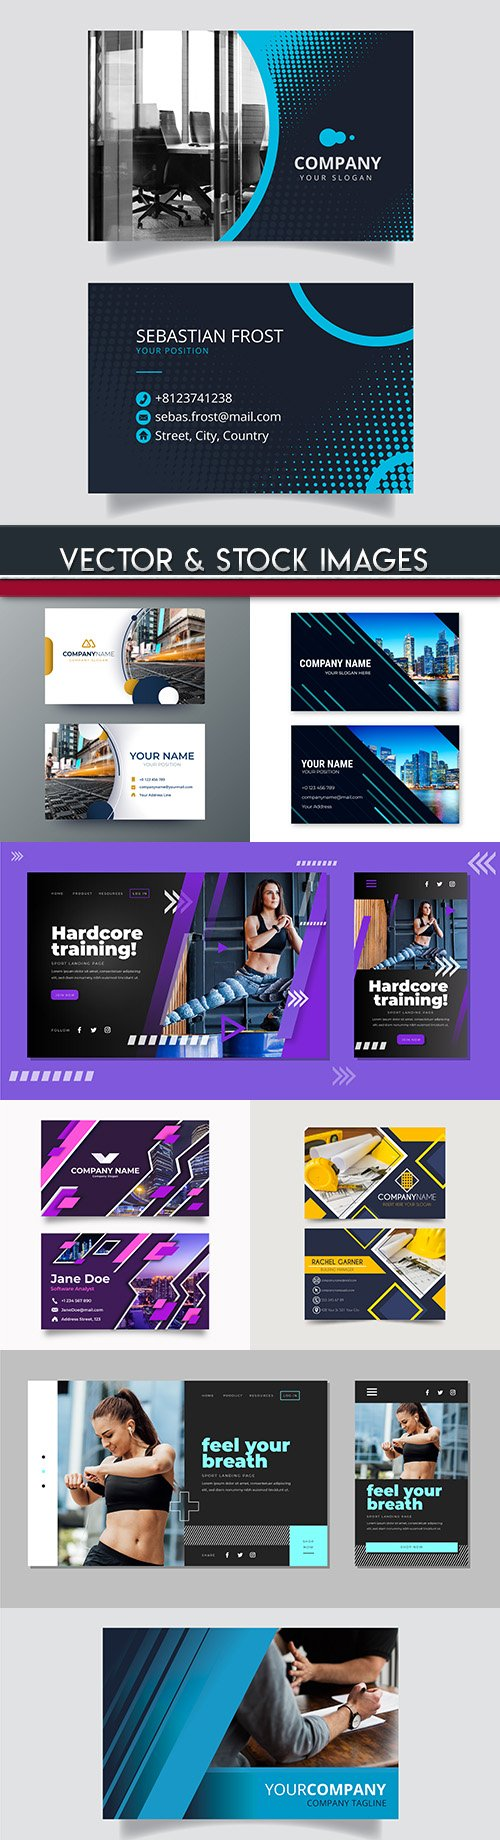 Business card and sheet template page design